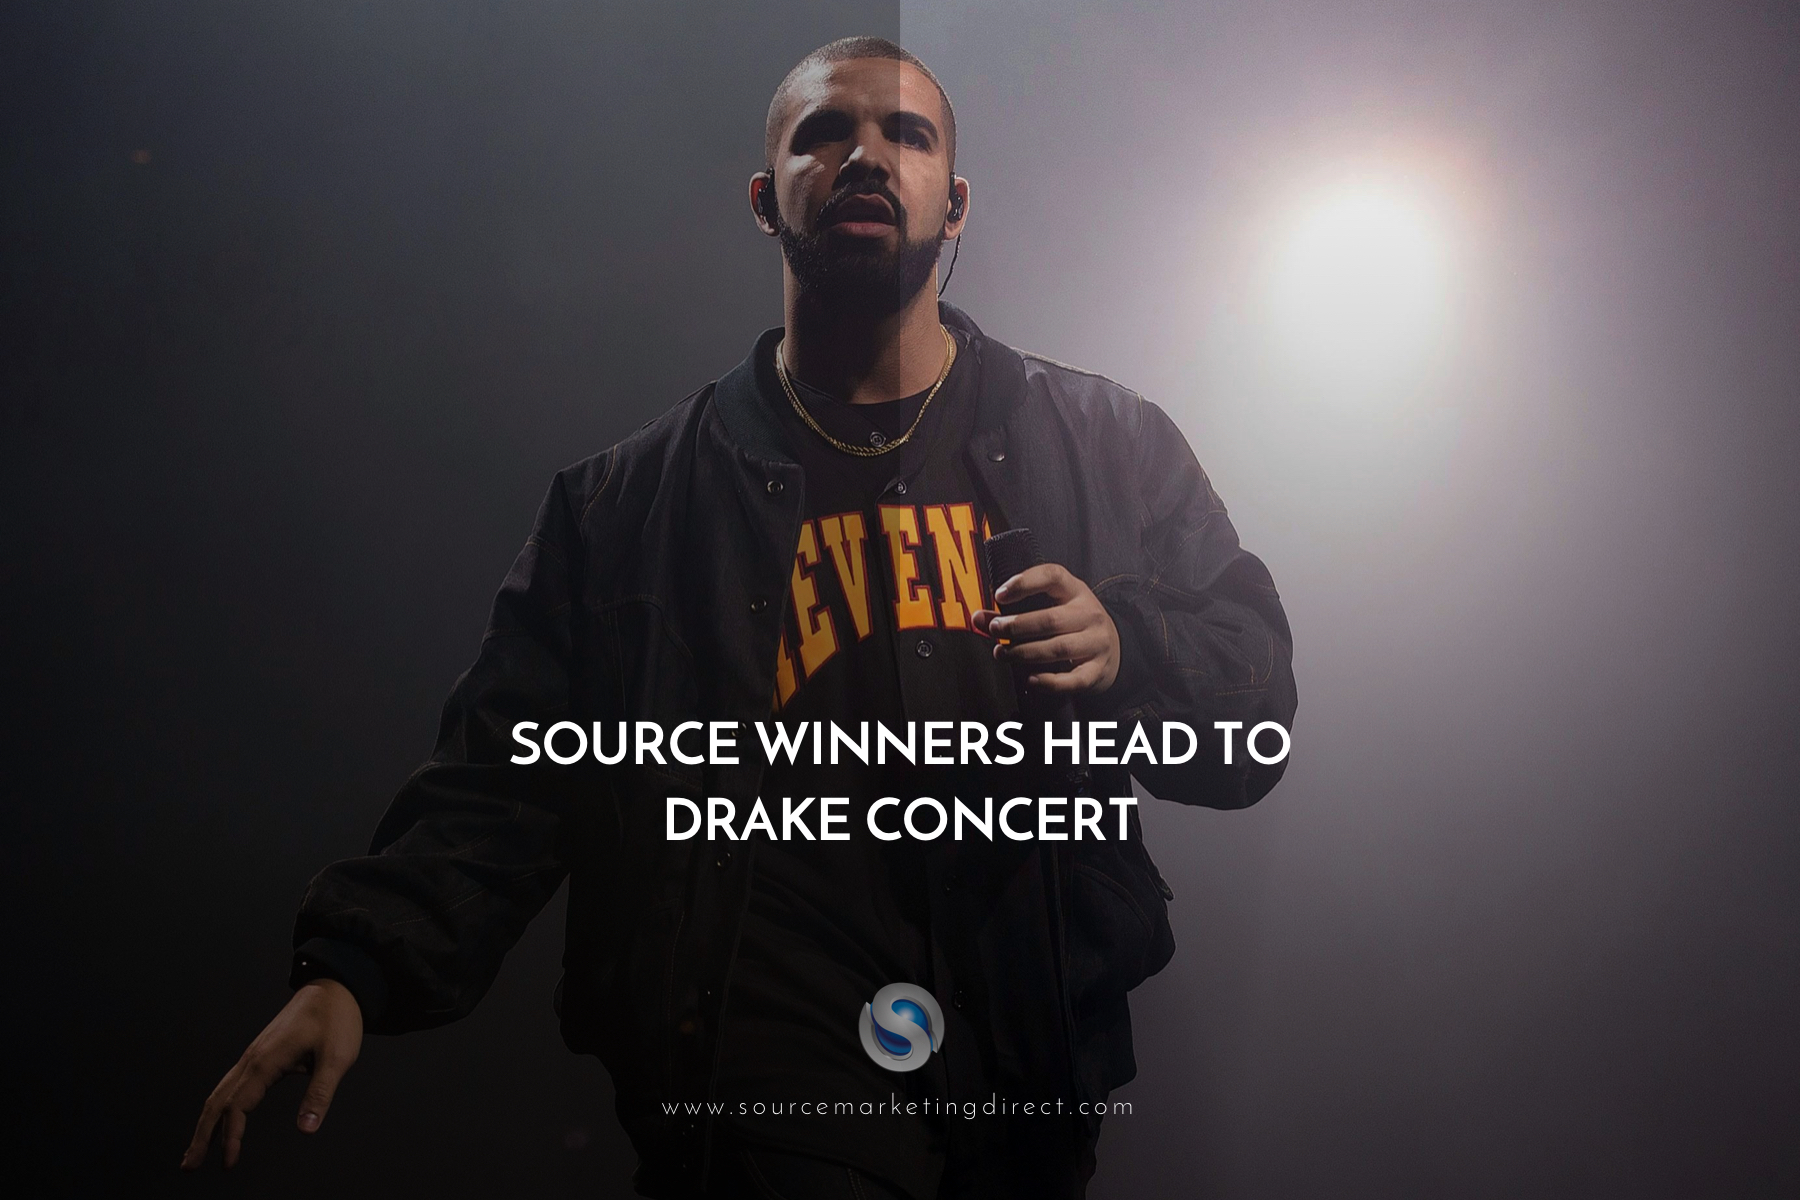 Source winners head to Drake concert on 9th April